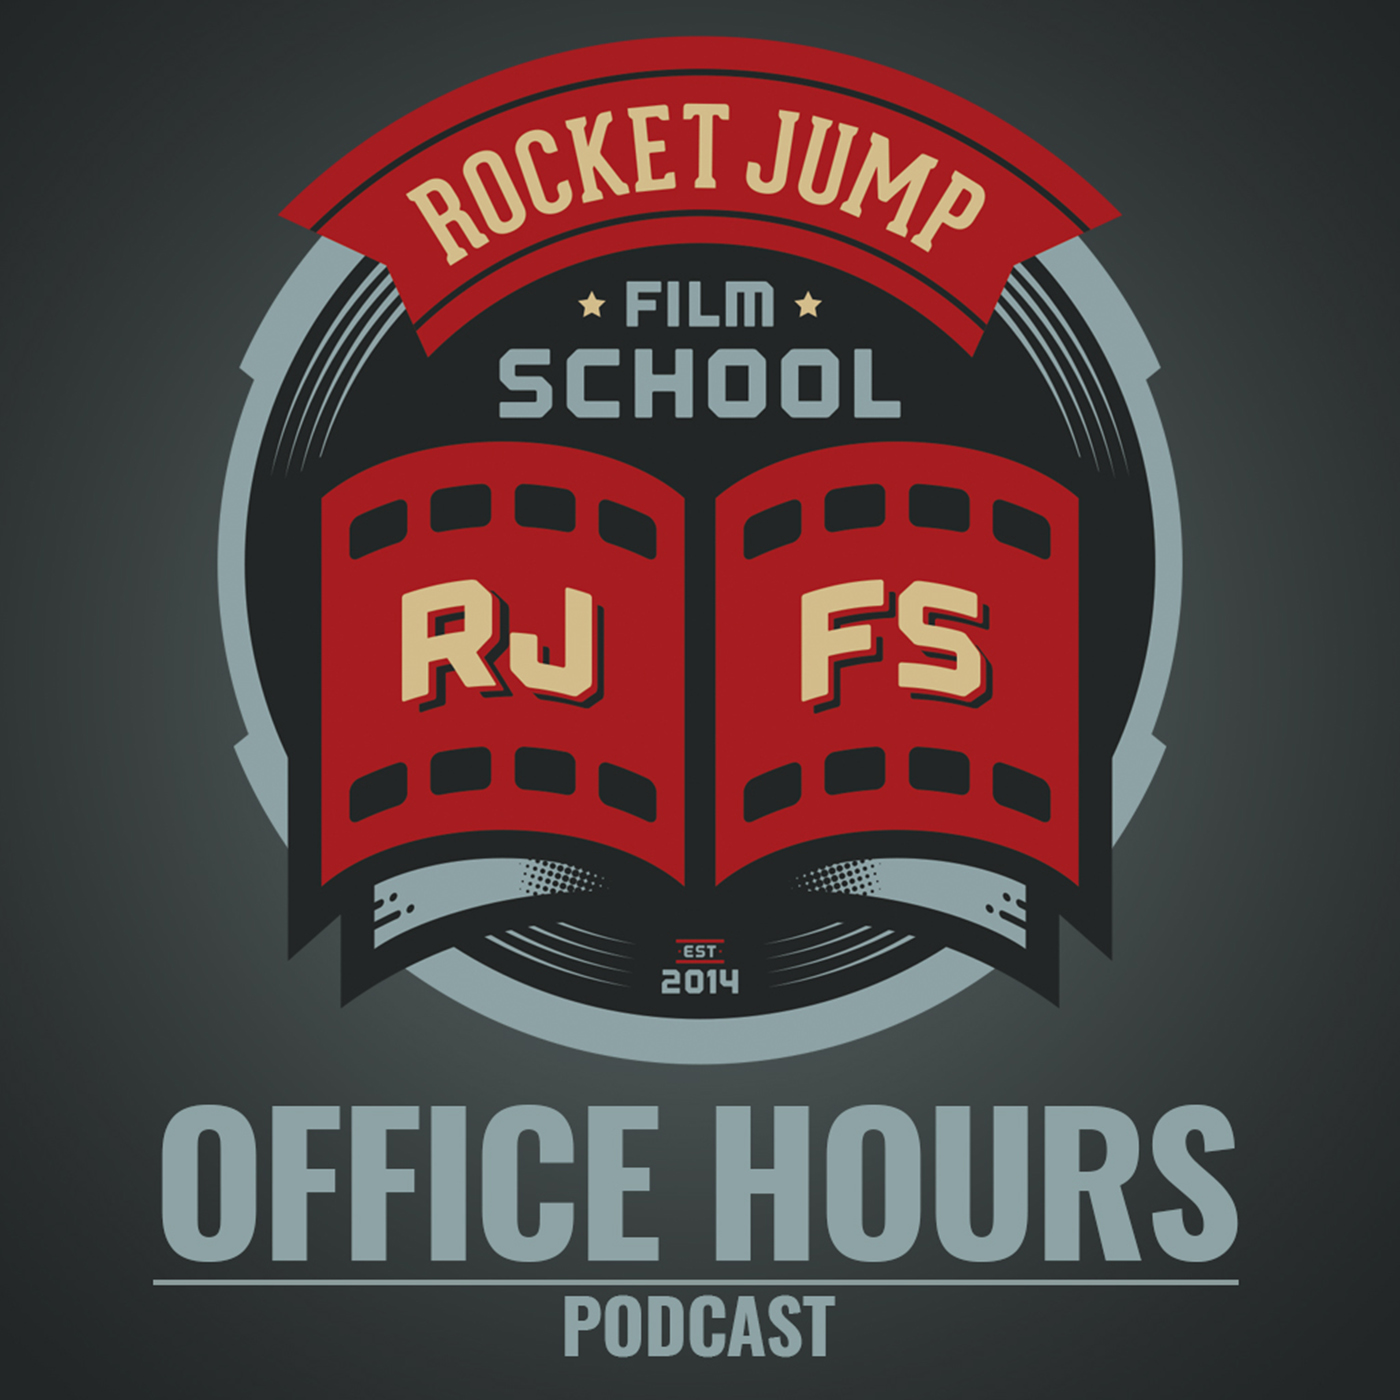 RocketJump Film School: Office Hours